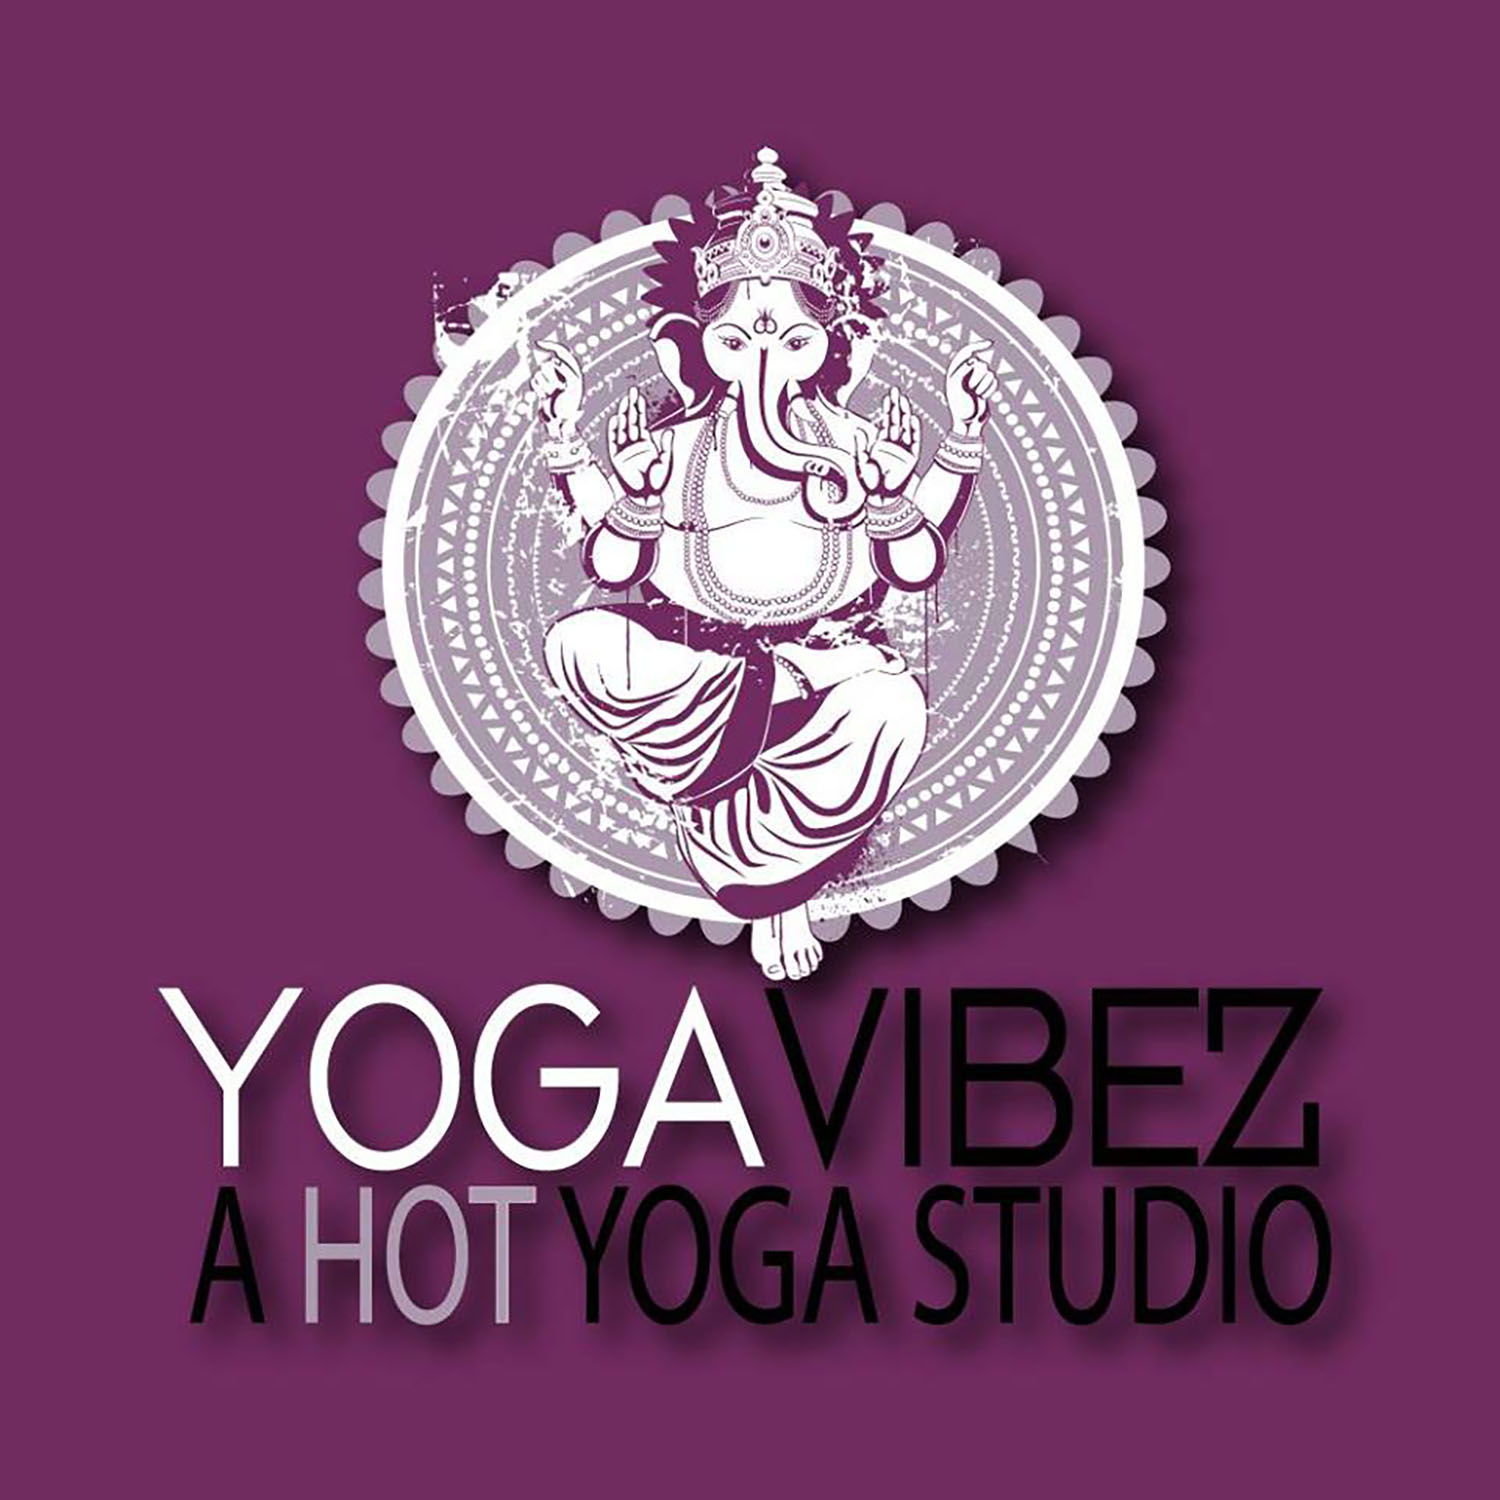 Come spend a day at our waterfront Yoga studio at Yogavibez Edgewater.